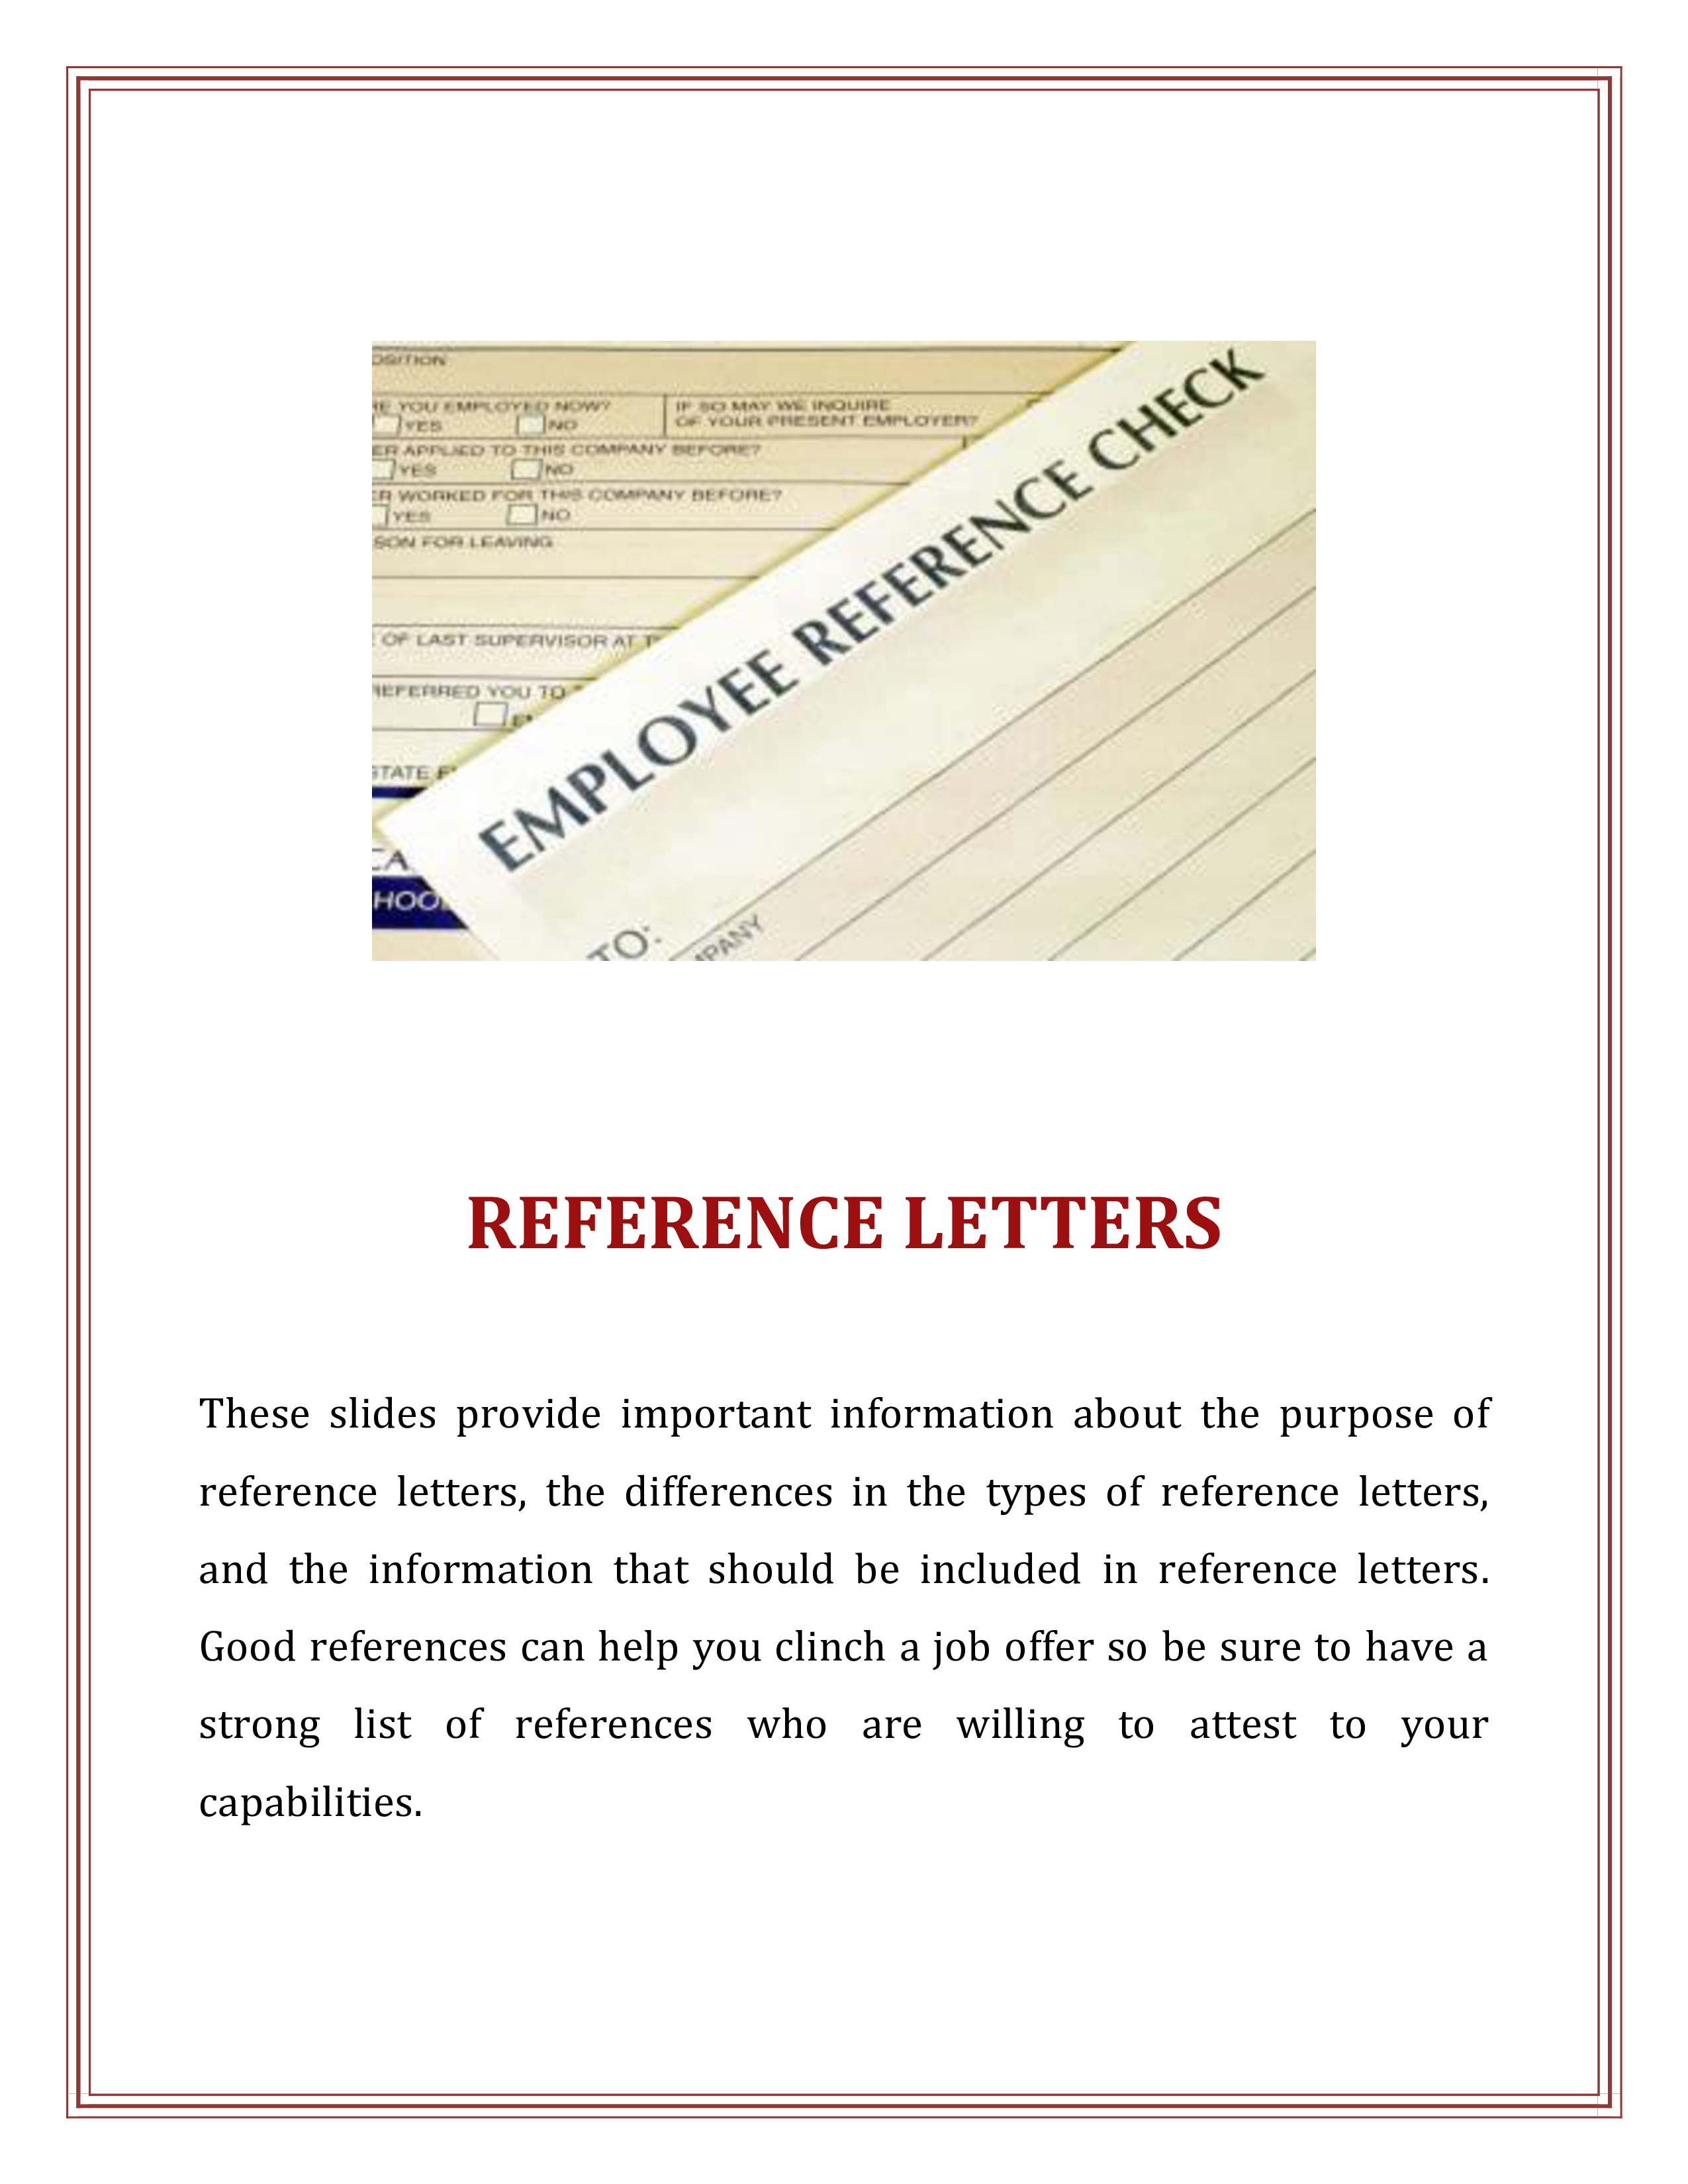 Personal Reference Letter Template from www.allbusinesstemplates.com